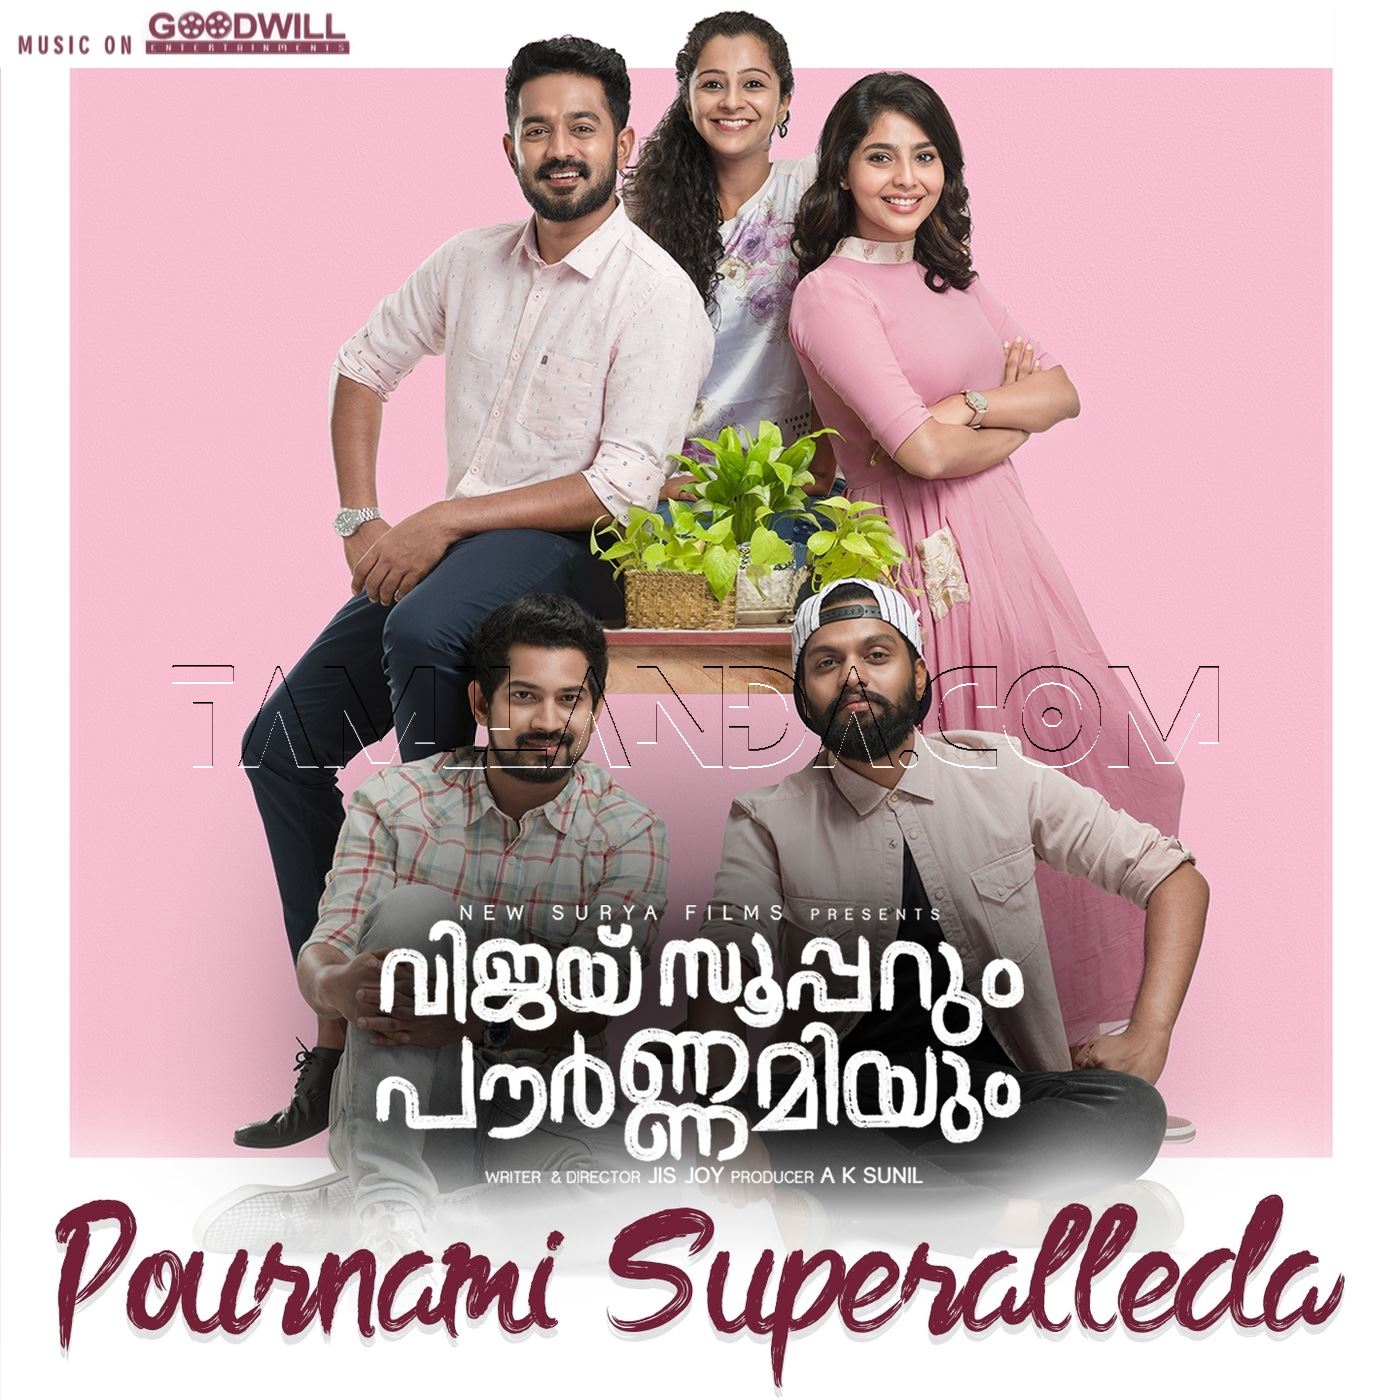 Pournami Superalleda (From Vijay Superum Pournamiyum) – Single FLAC Song (2018)